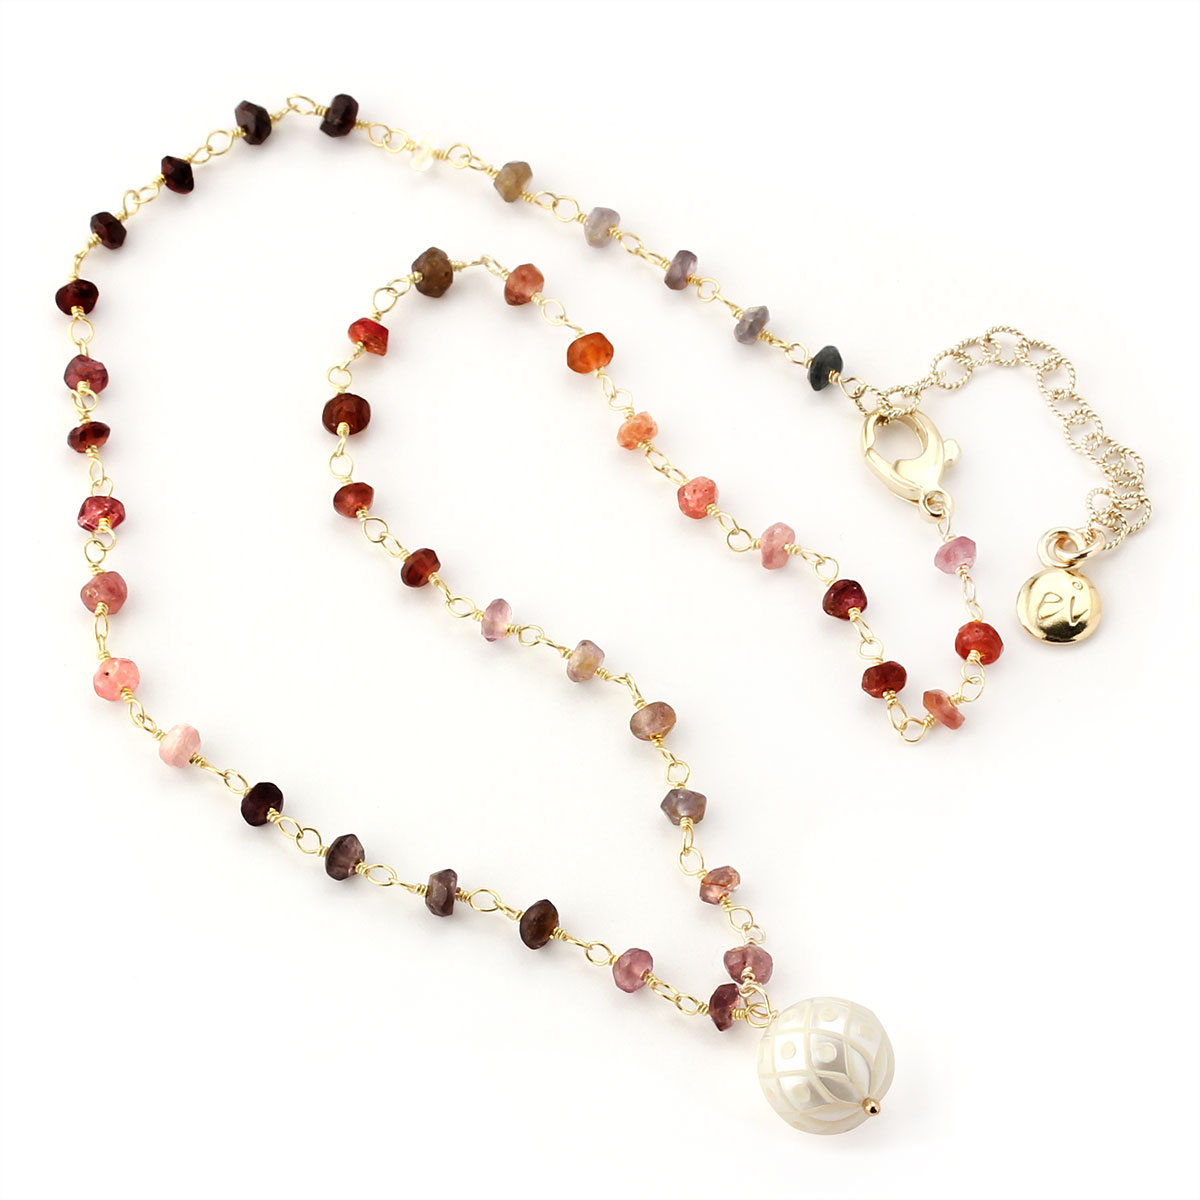 348521-Pearl & Spinel Necklace